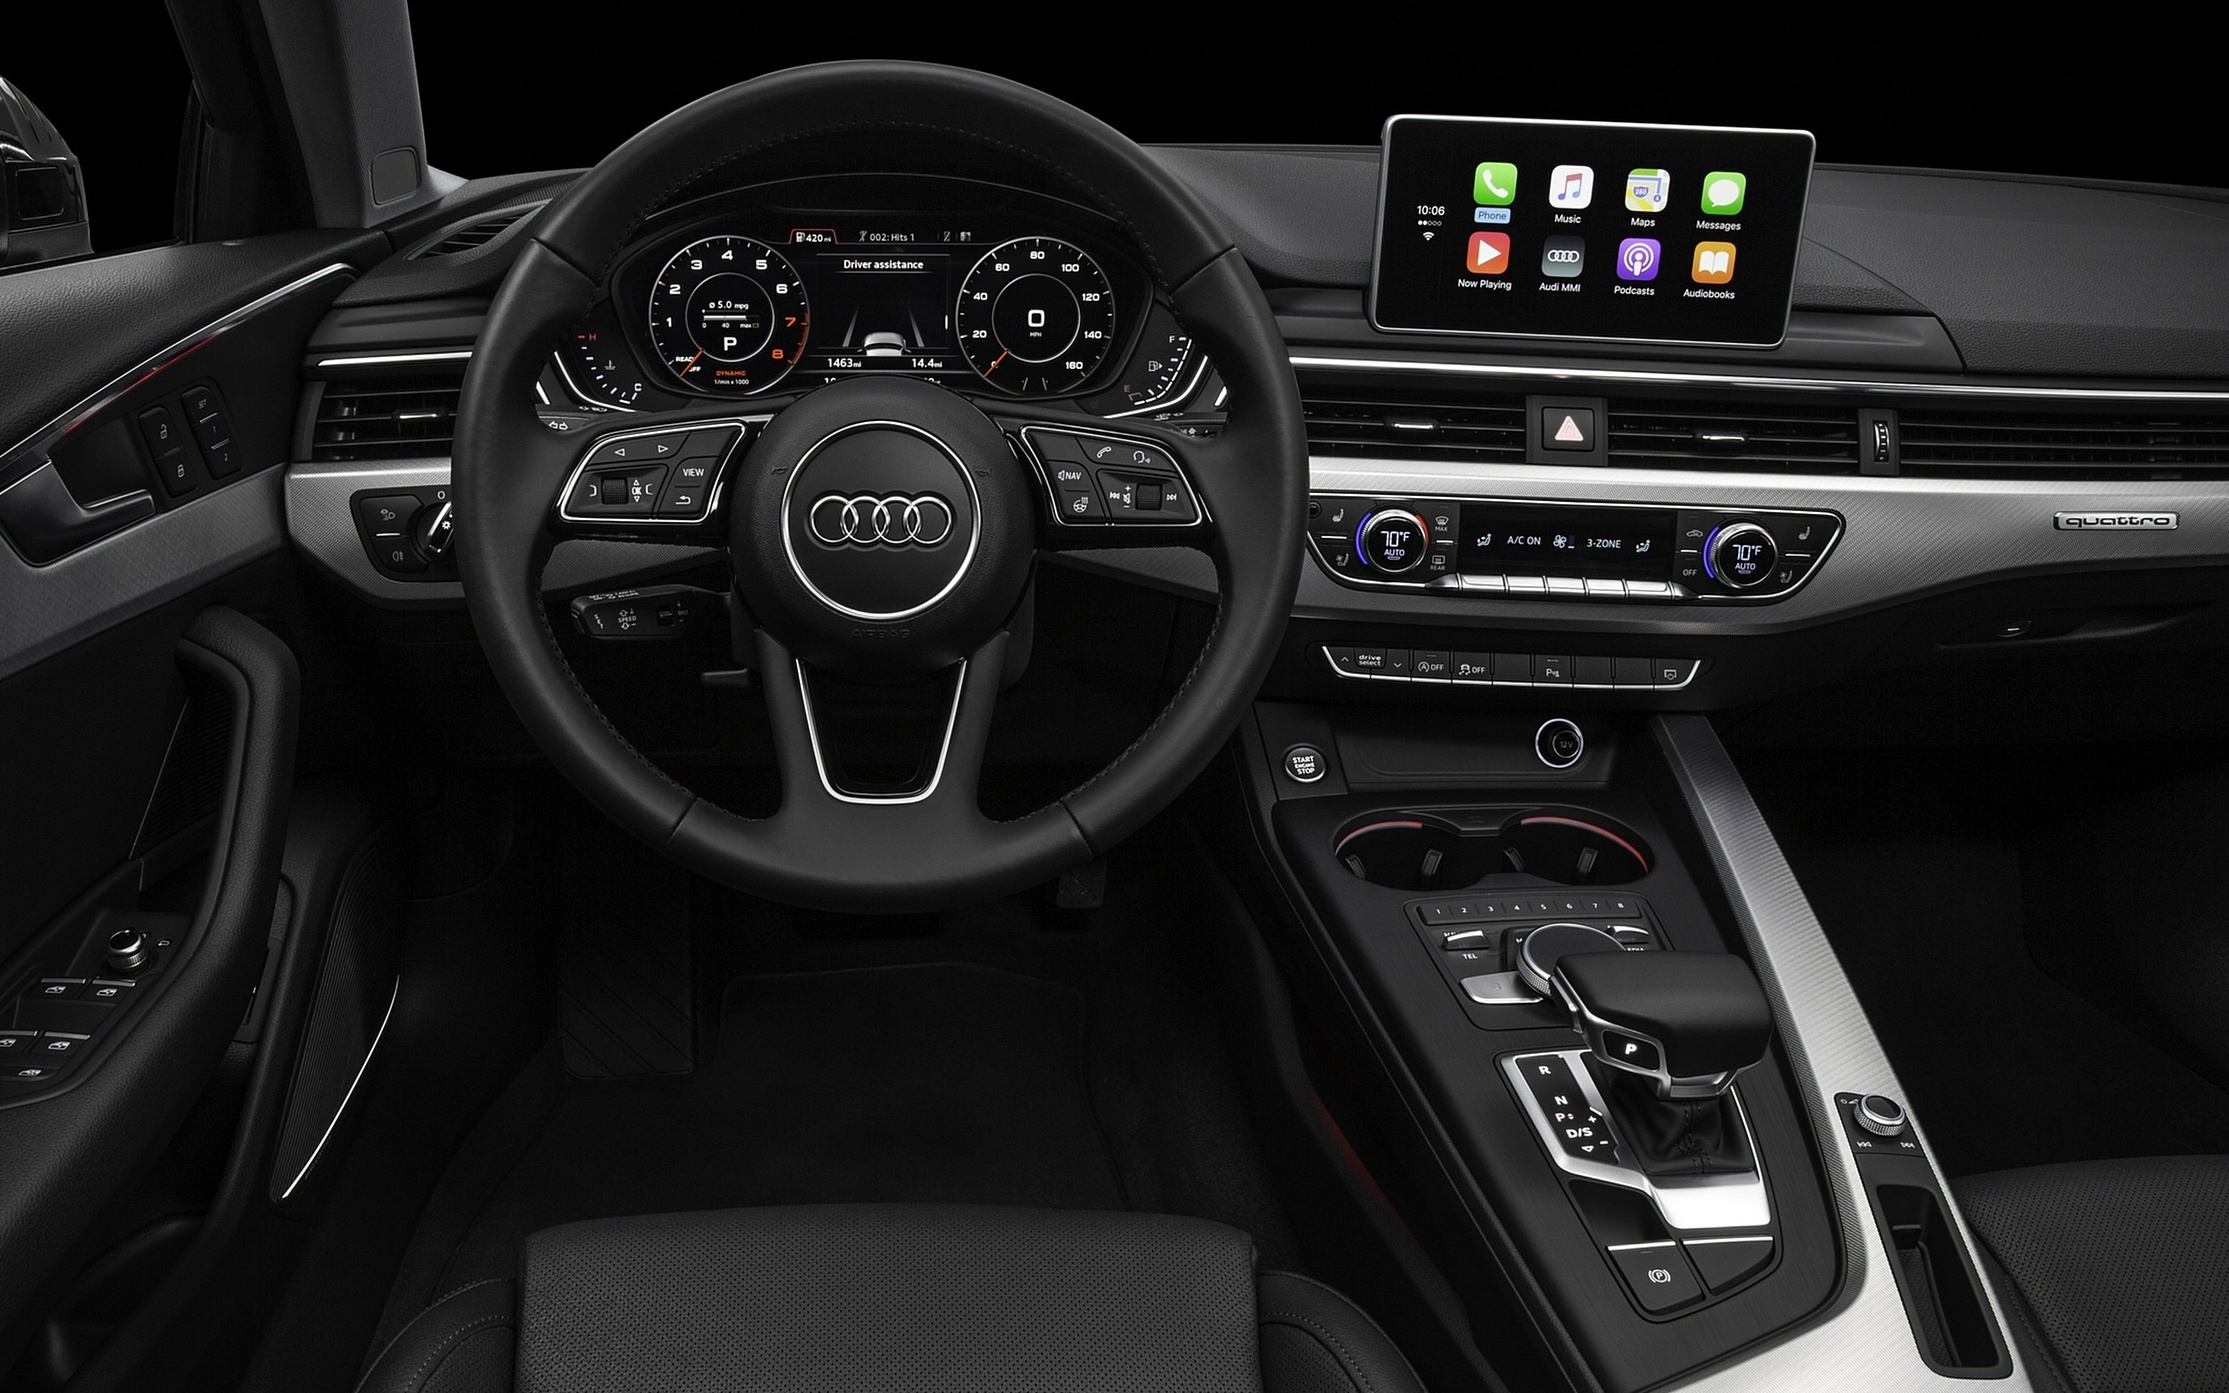 2015 audi a4 interior. Black Bedroom Furniture Sets. Home Design Ideas